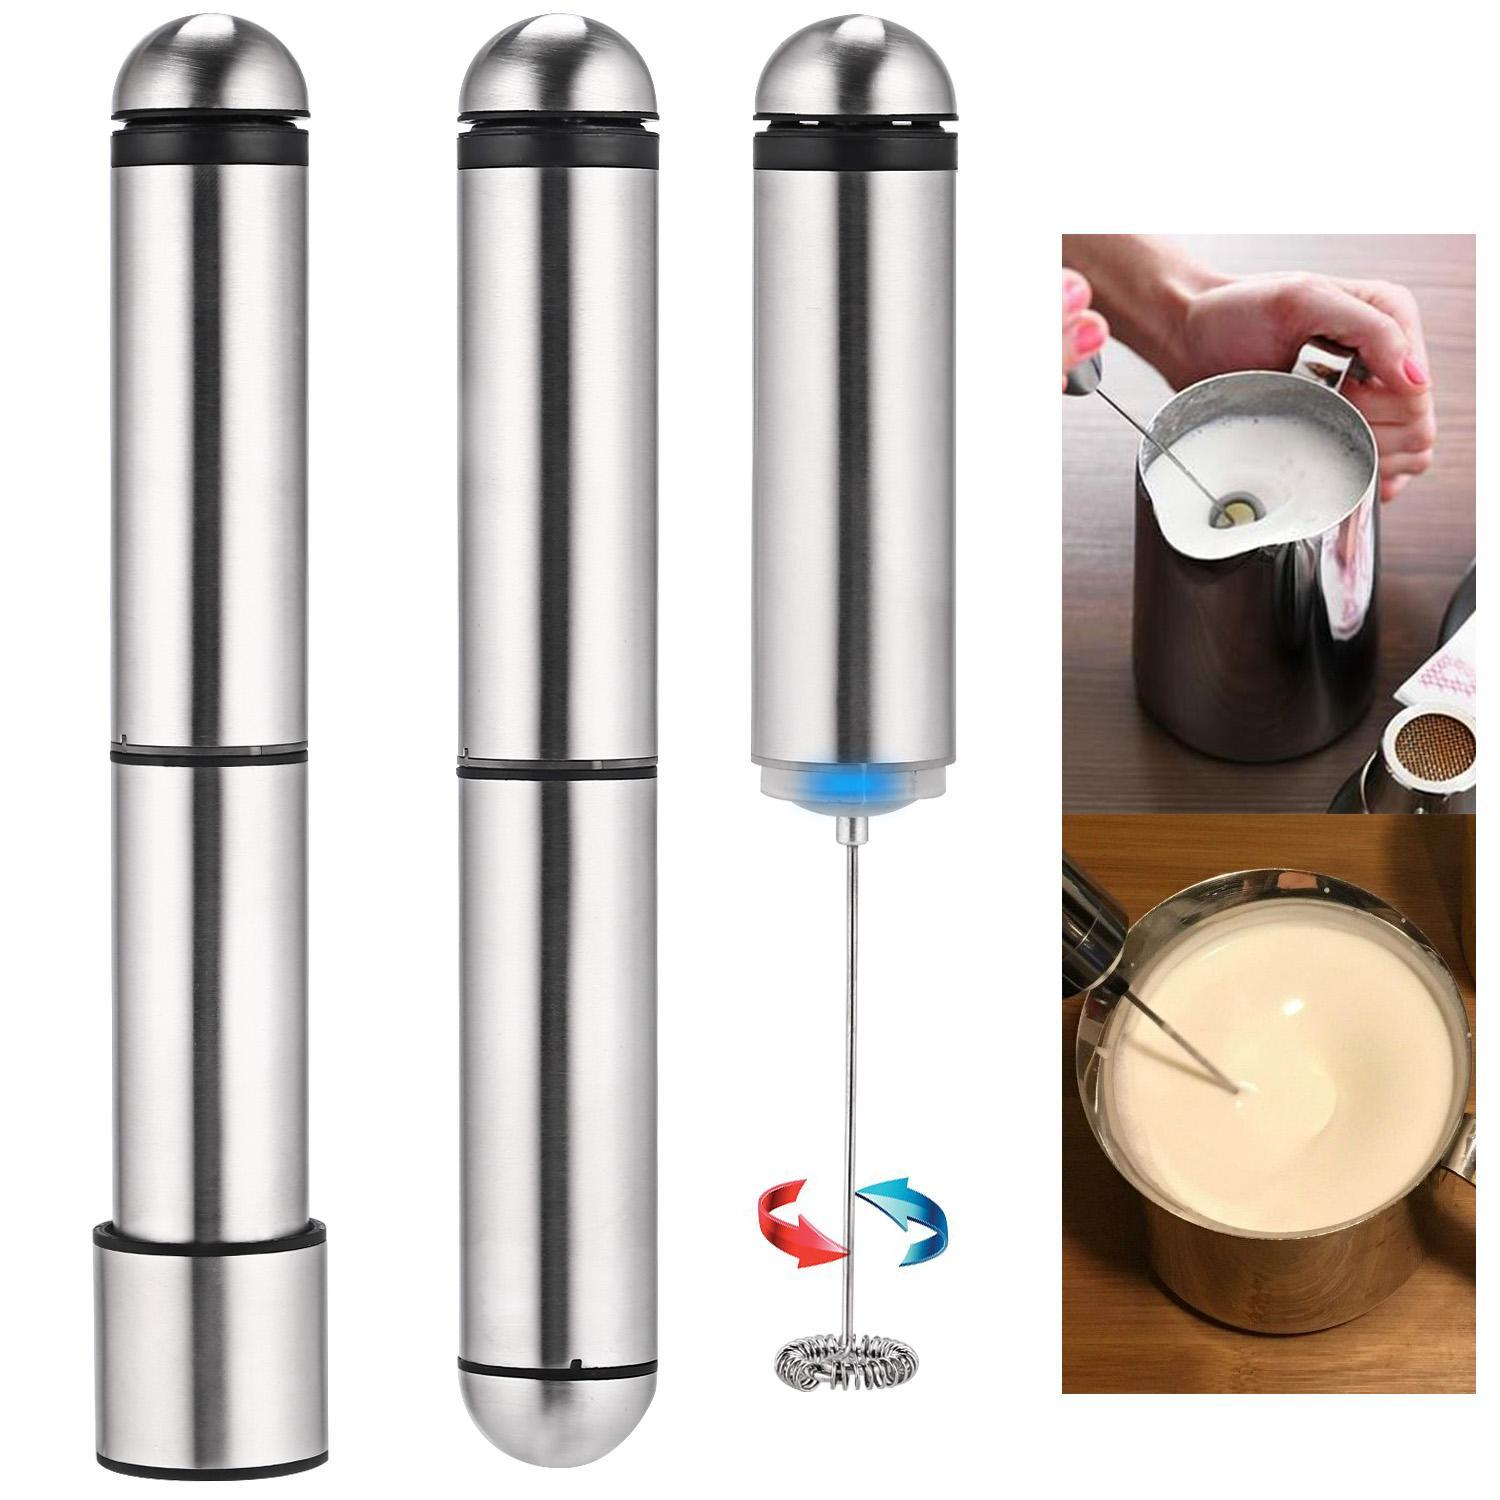 Clearance&Sales !!! Removable Stainless Steel Cover Milk Frother Kitchen Home Bar Coffee Tea Chocolate Milk... by